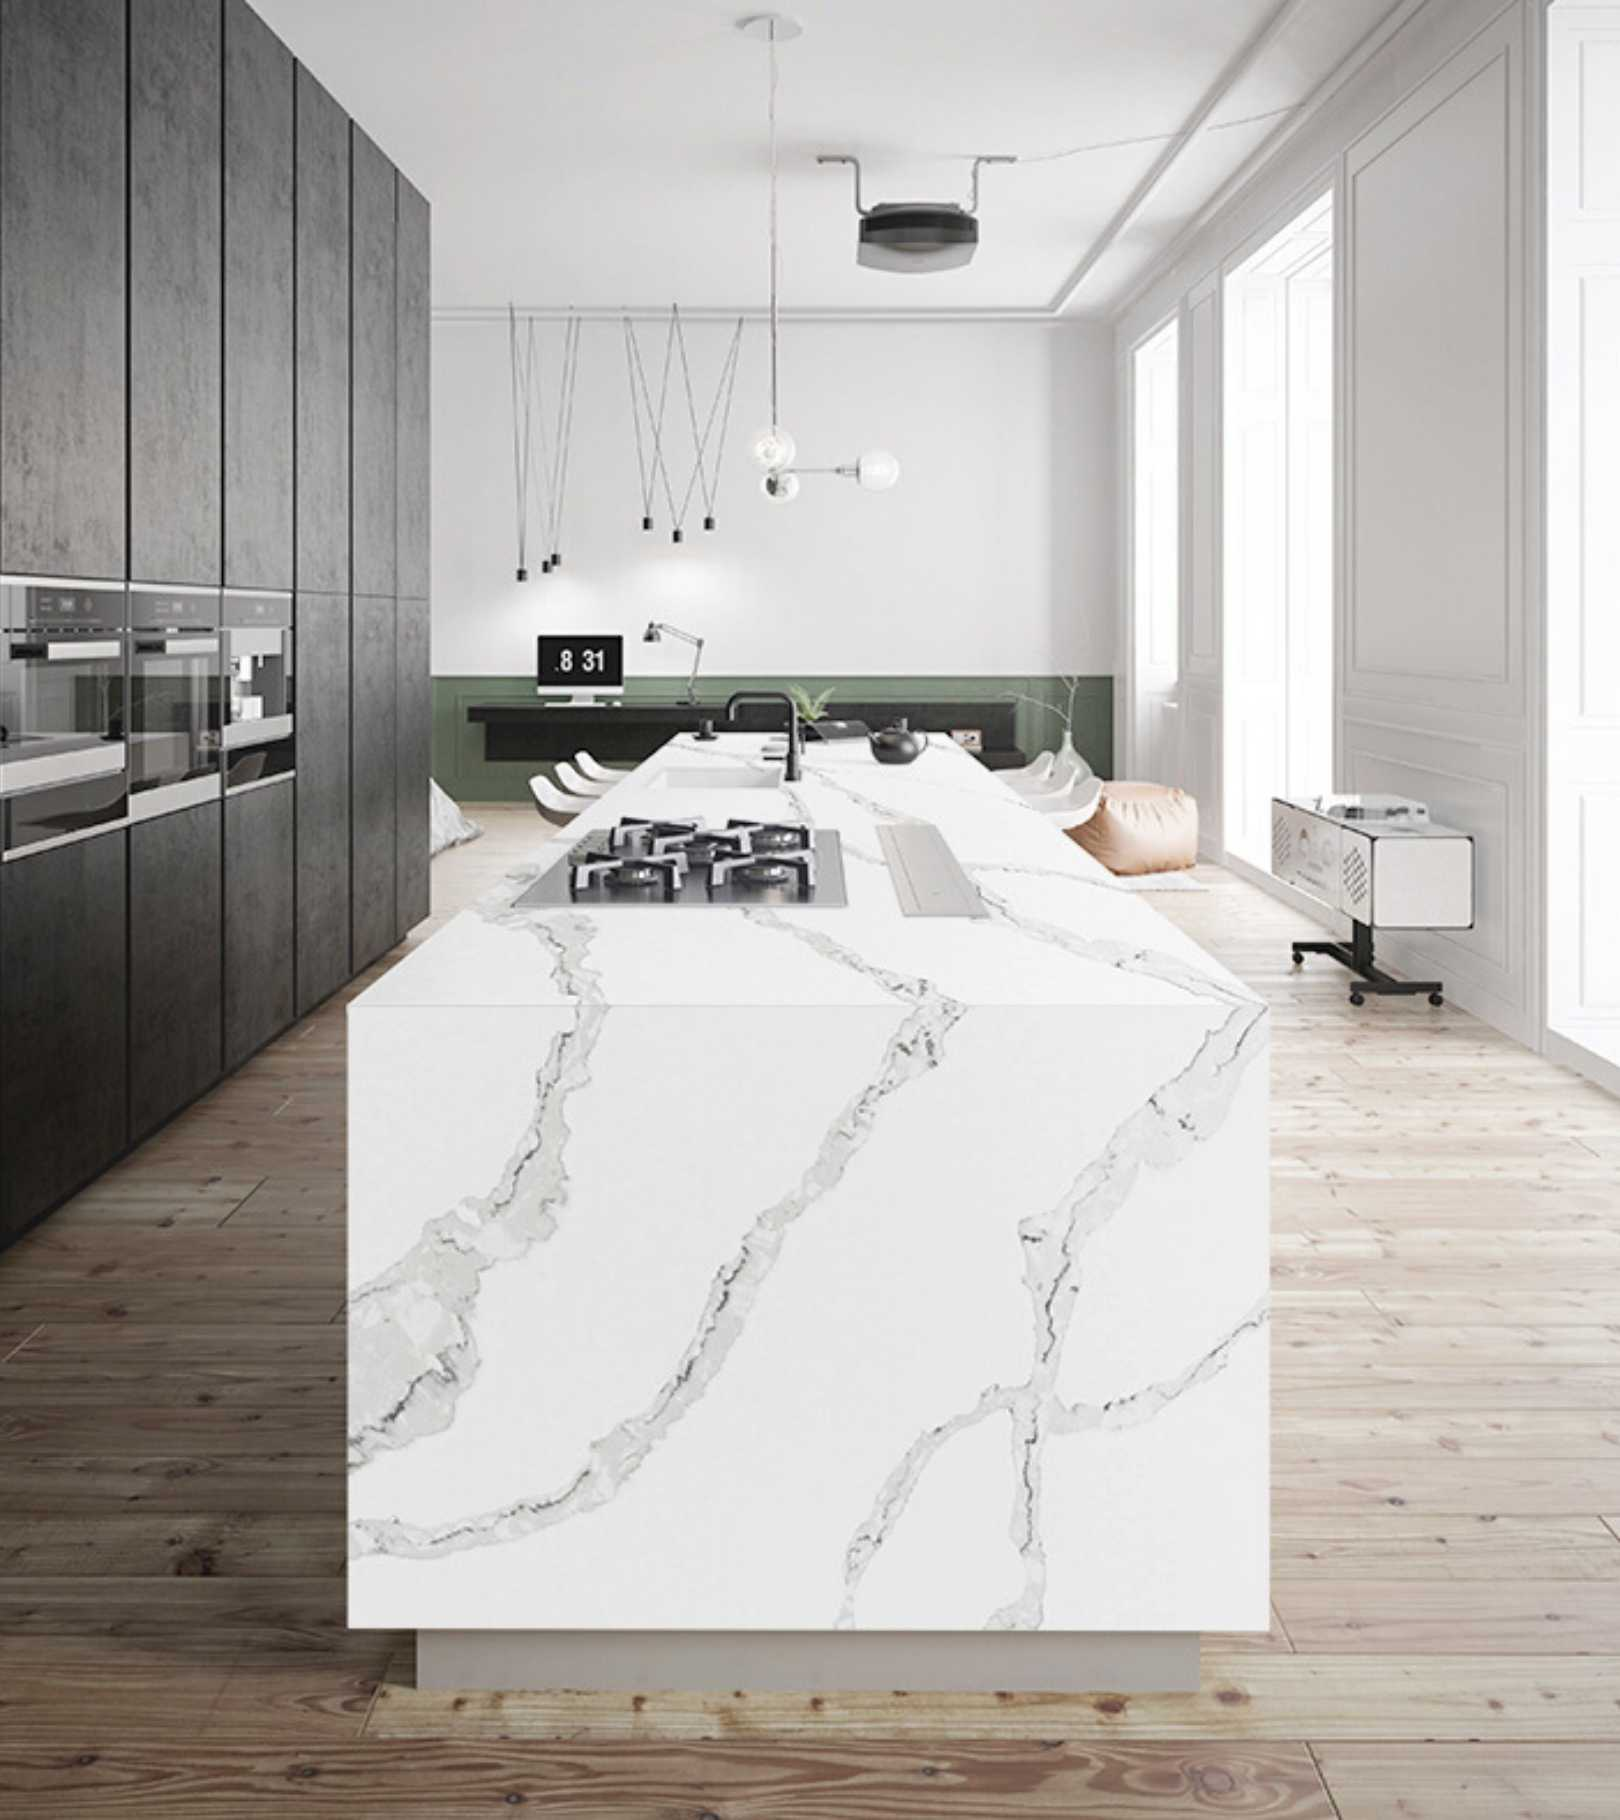 Calacatta Italia quartz kitchen countertop